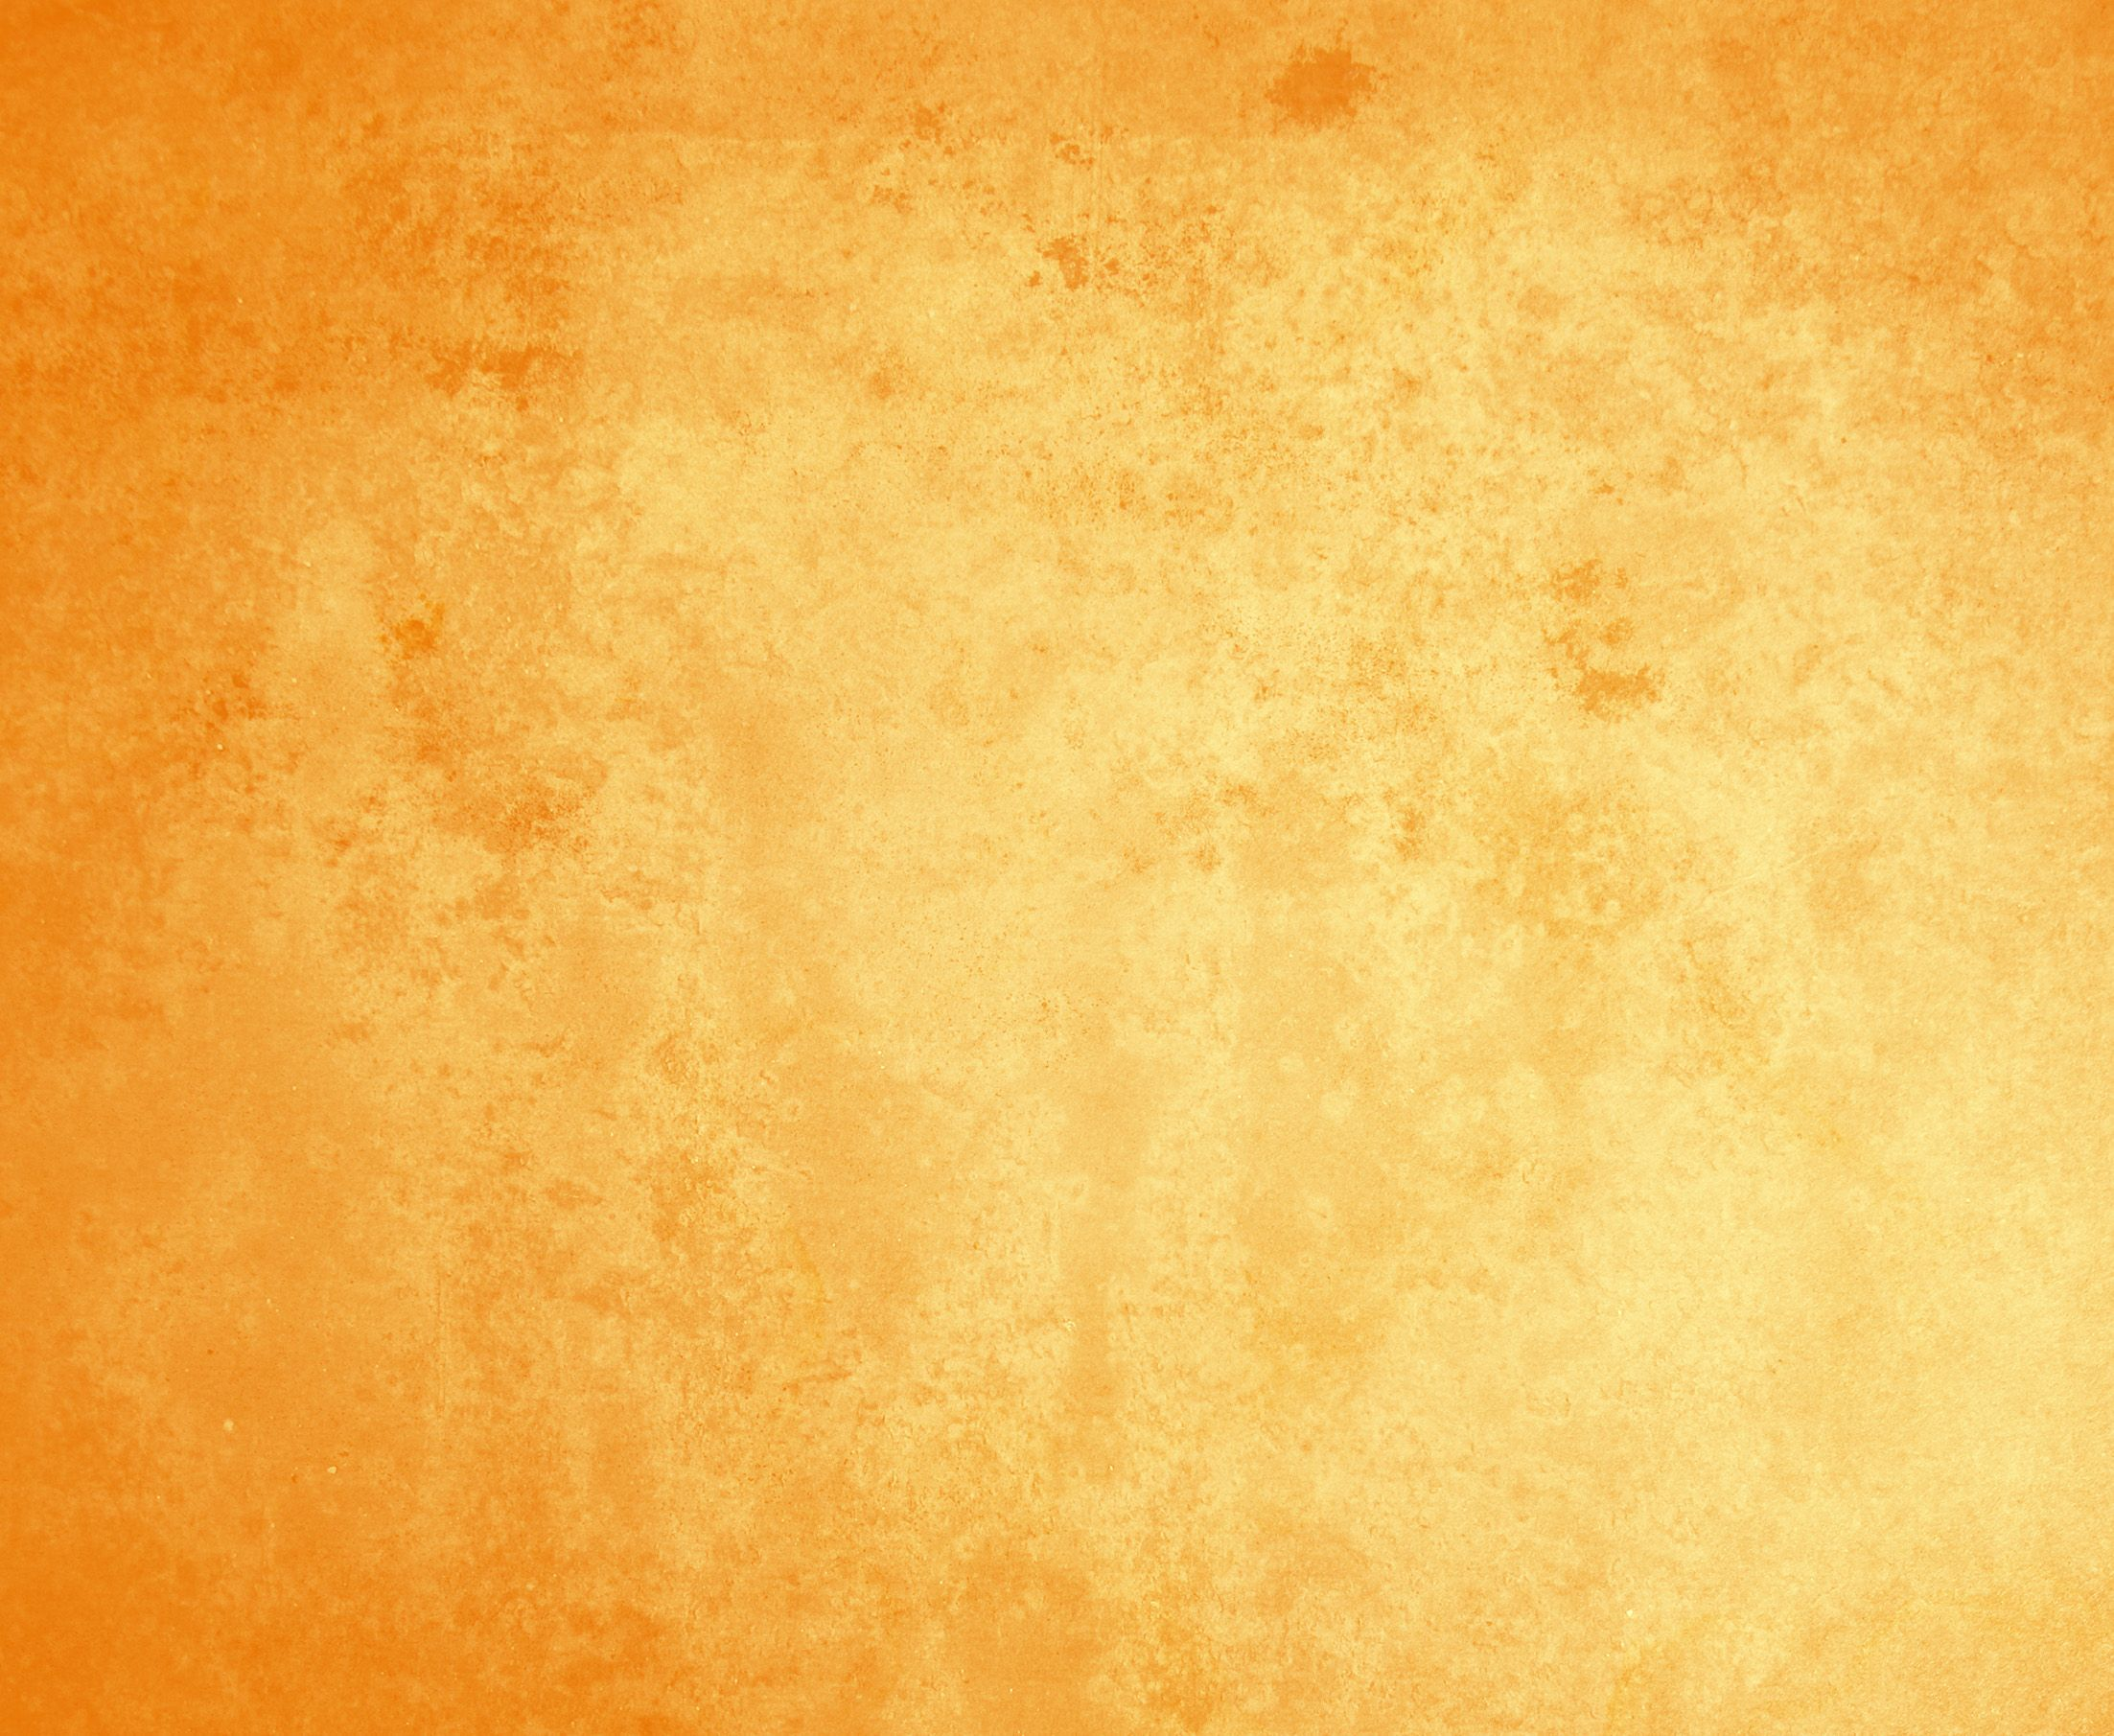 cs orange distressed paper.jpg (2205×1811) | Graphic ...